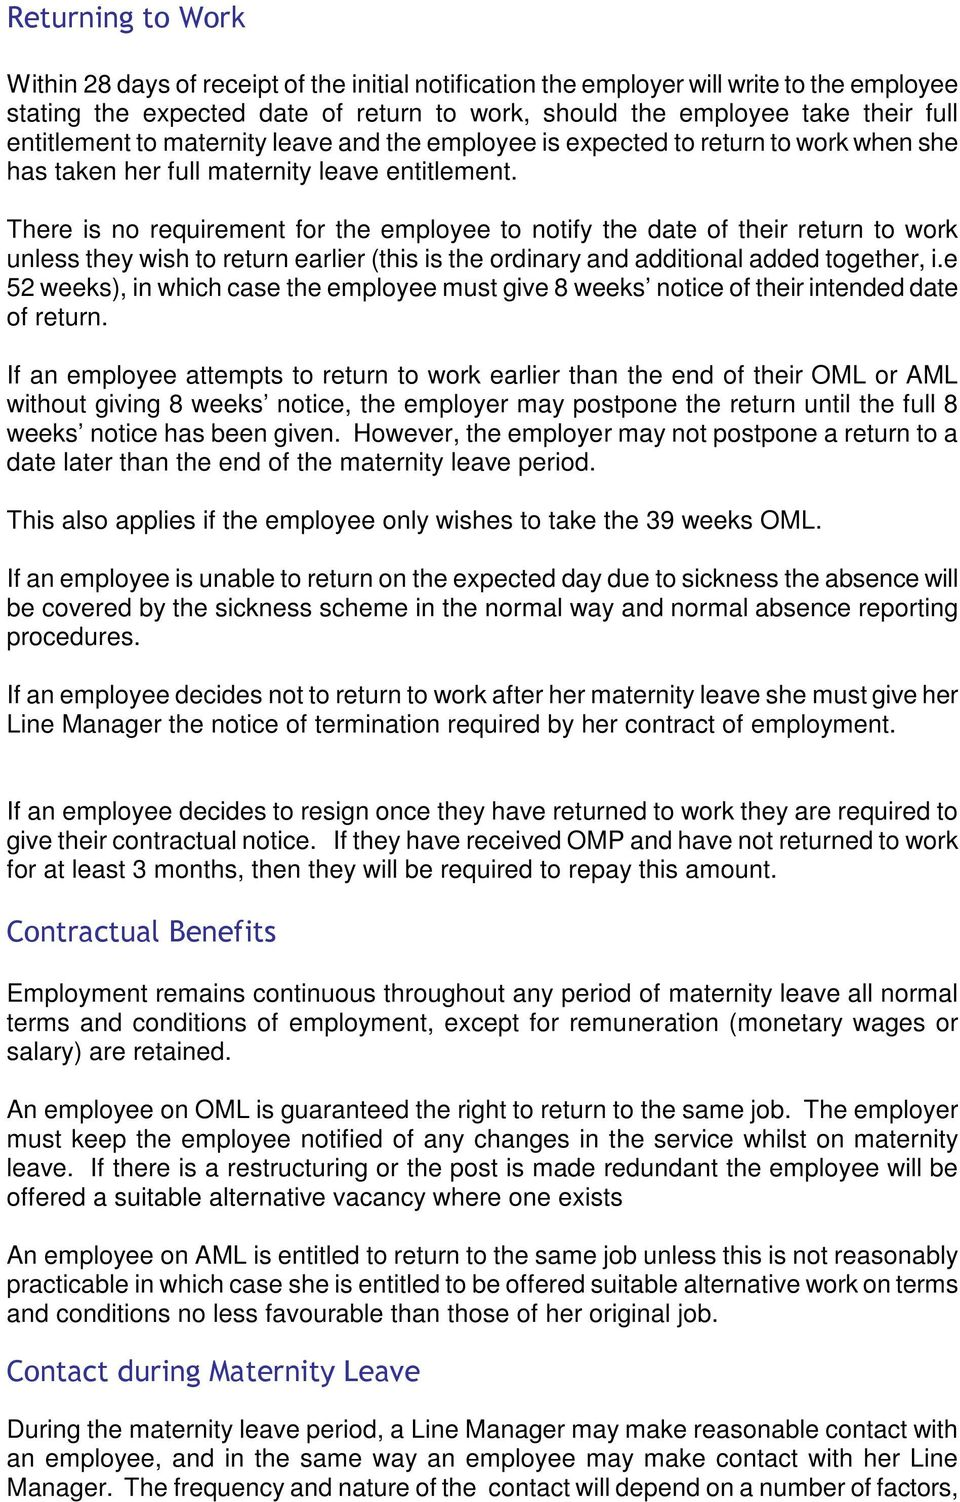 There is no requirement for the employee to notify the date of their return to work unless they wish to return earlier (this is the ordinary and additional added together, i.